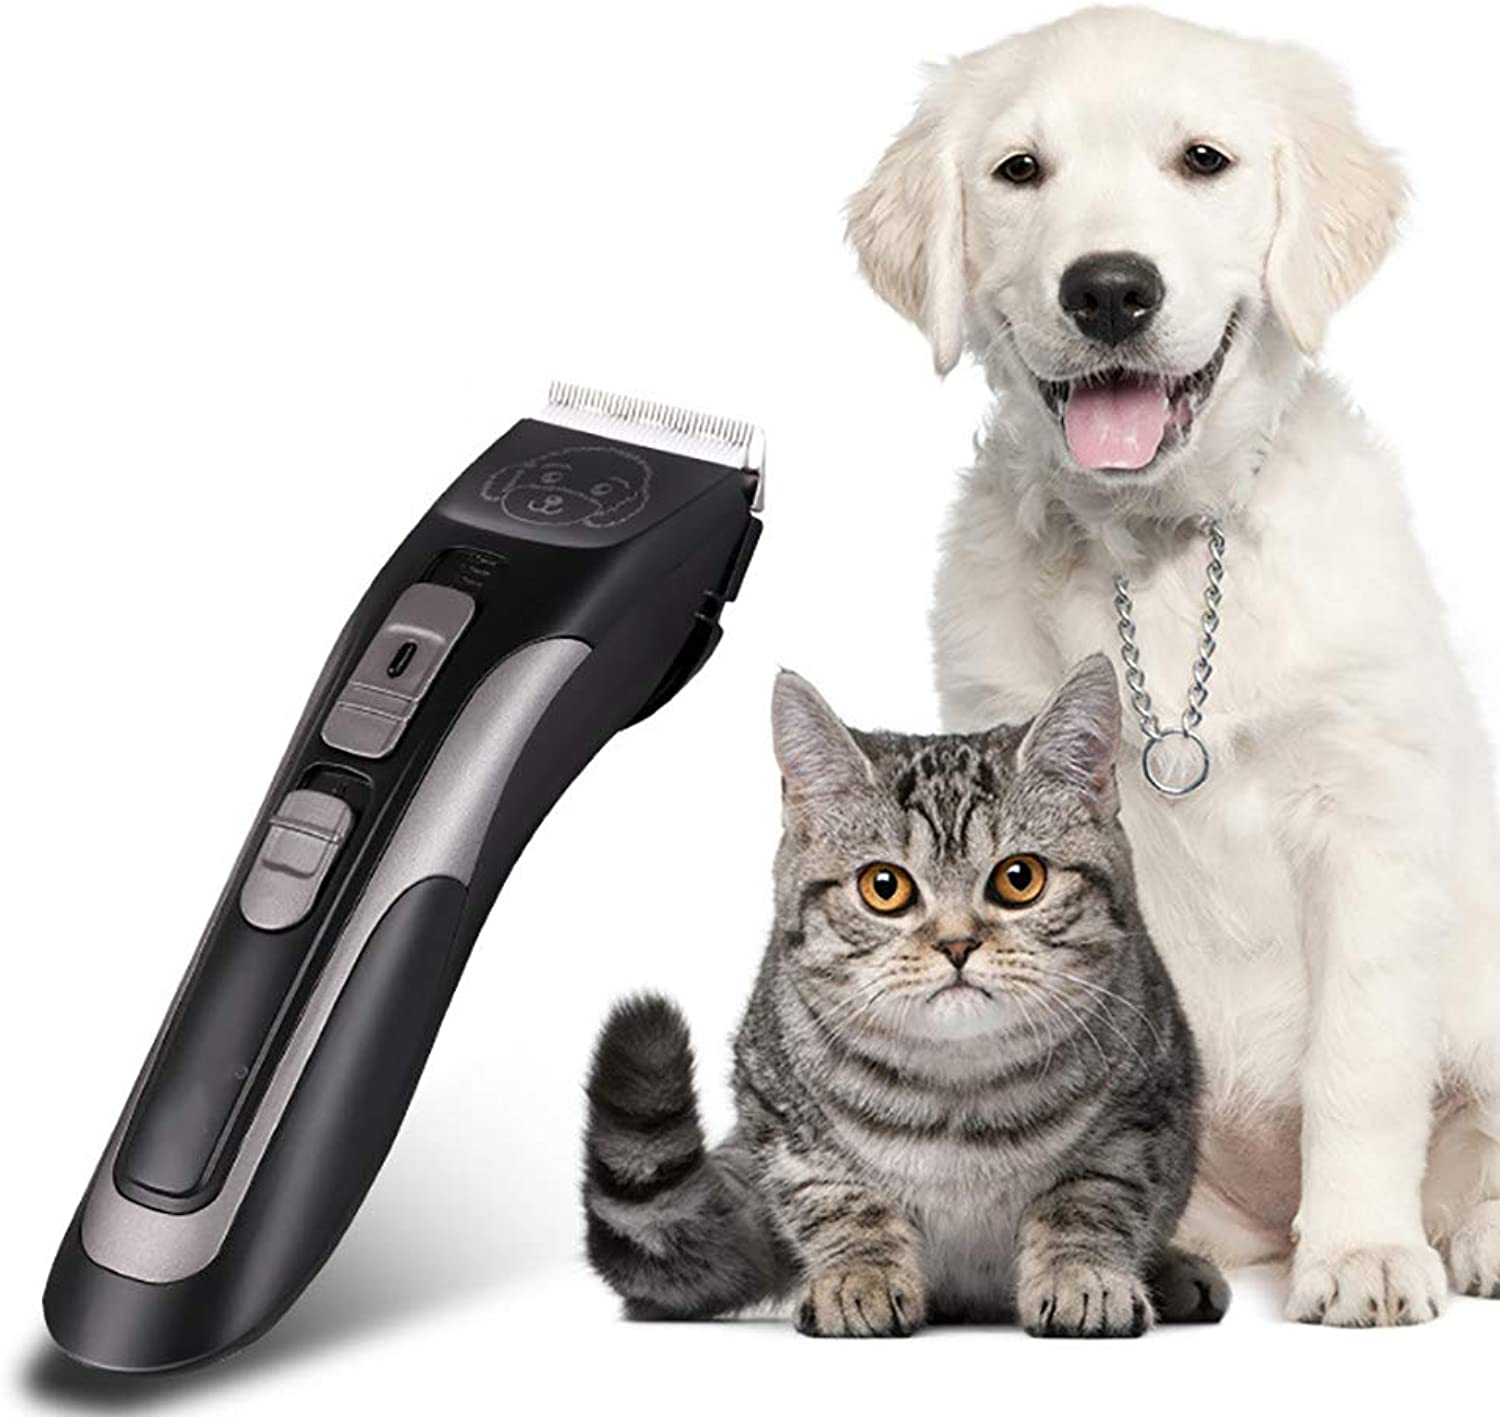 QNMM Dog Rechargeable Grooming Clippers Professional Grooming Clippers Detachable Blades Cordless Pet Clipper Kit for Dogs Cats Pets